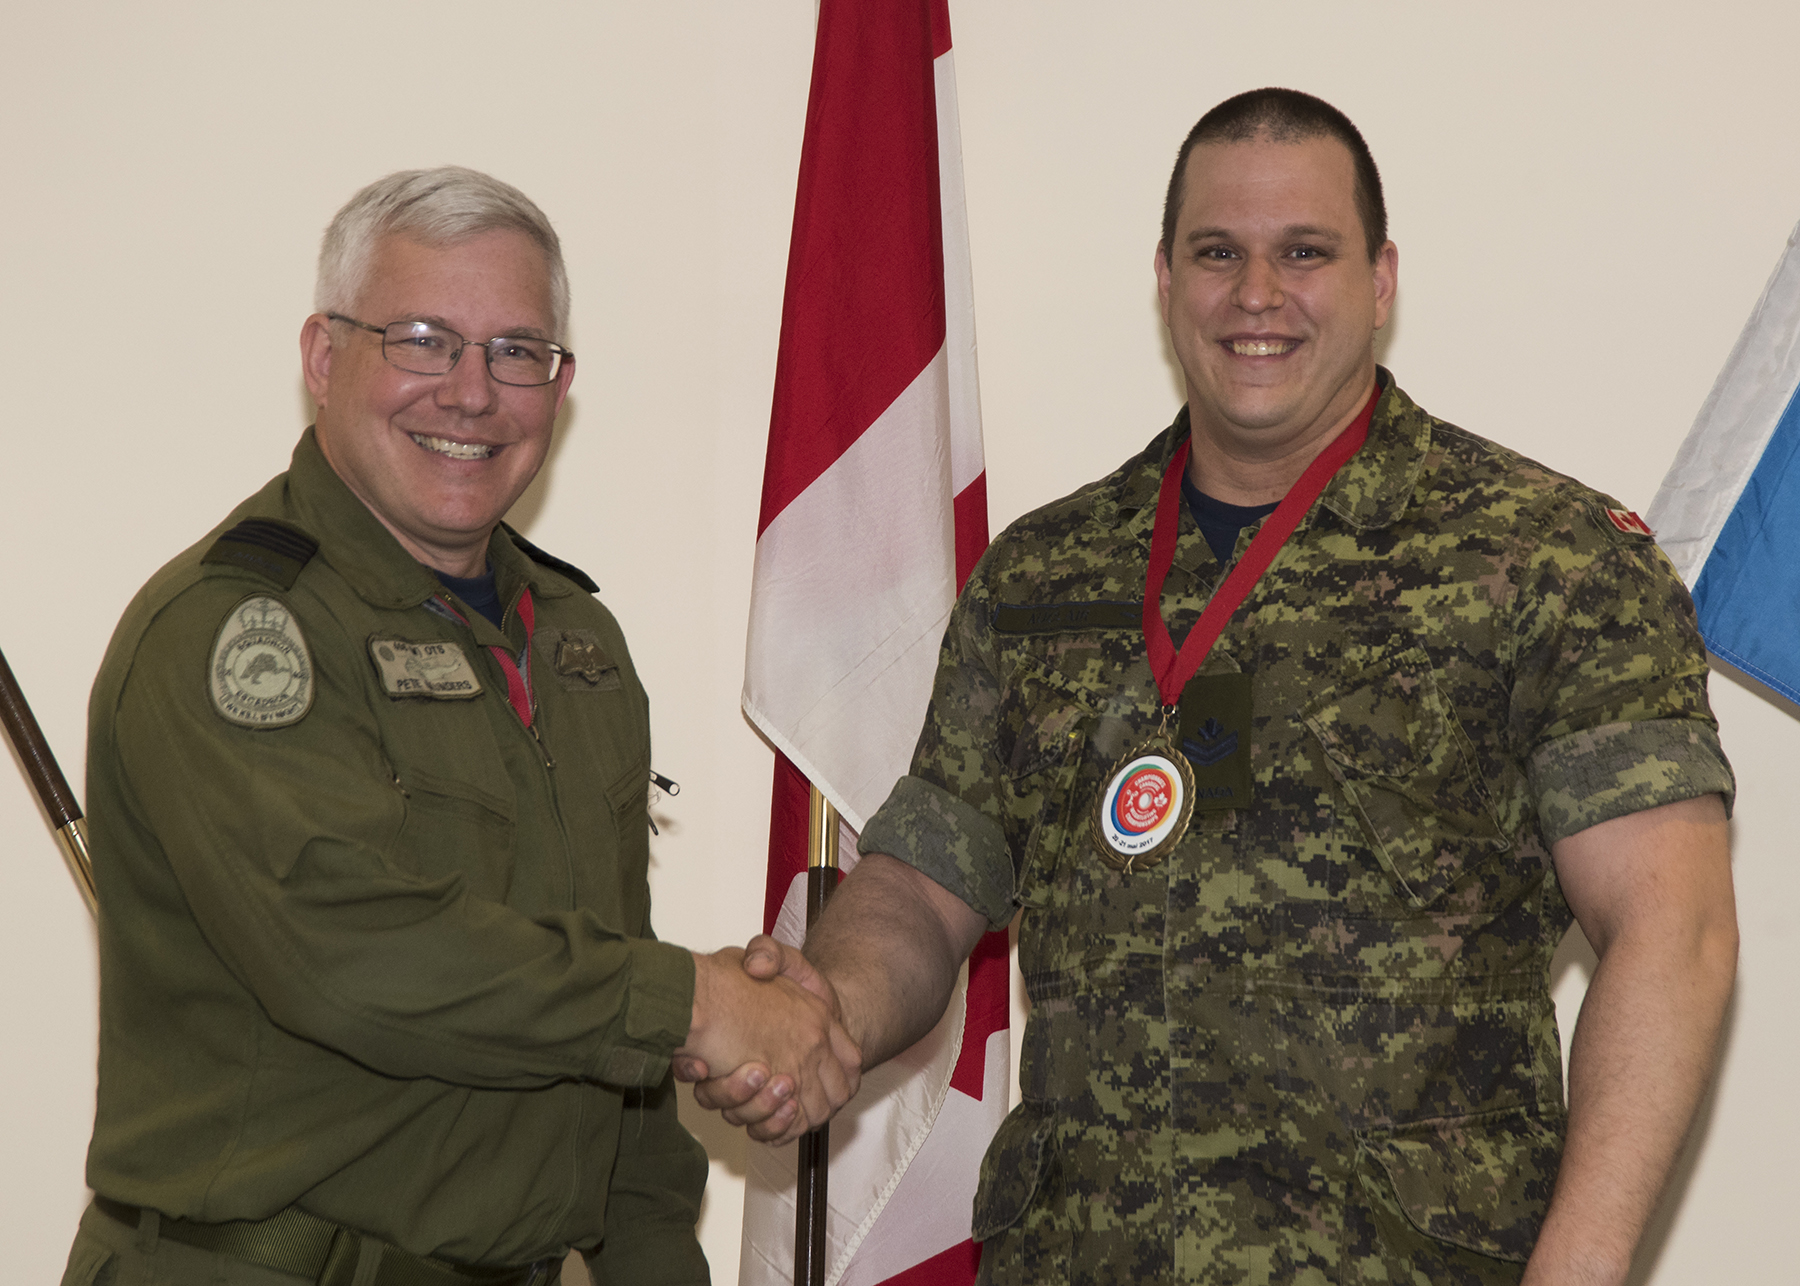 A man in an olive green uniform shakes hands with a man wearing a green and black disruptive pattern uniform and a medal around his neck.